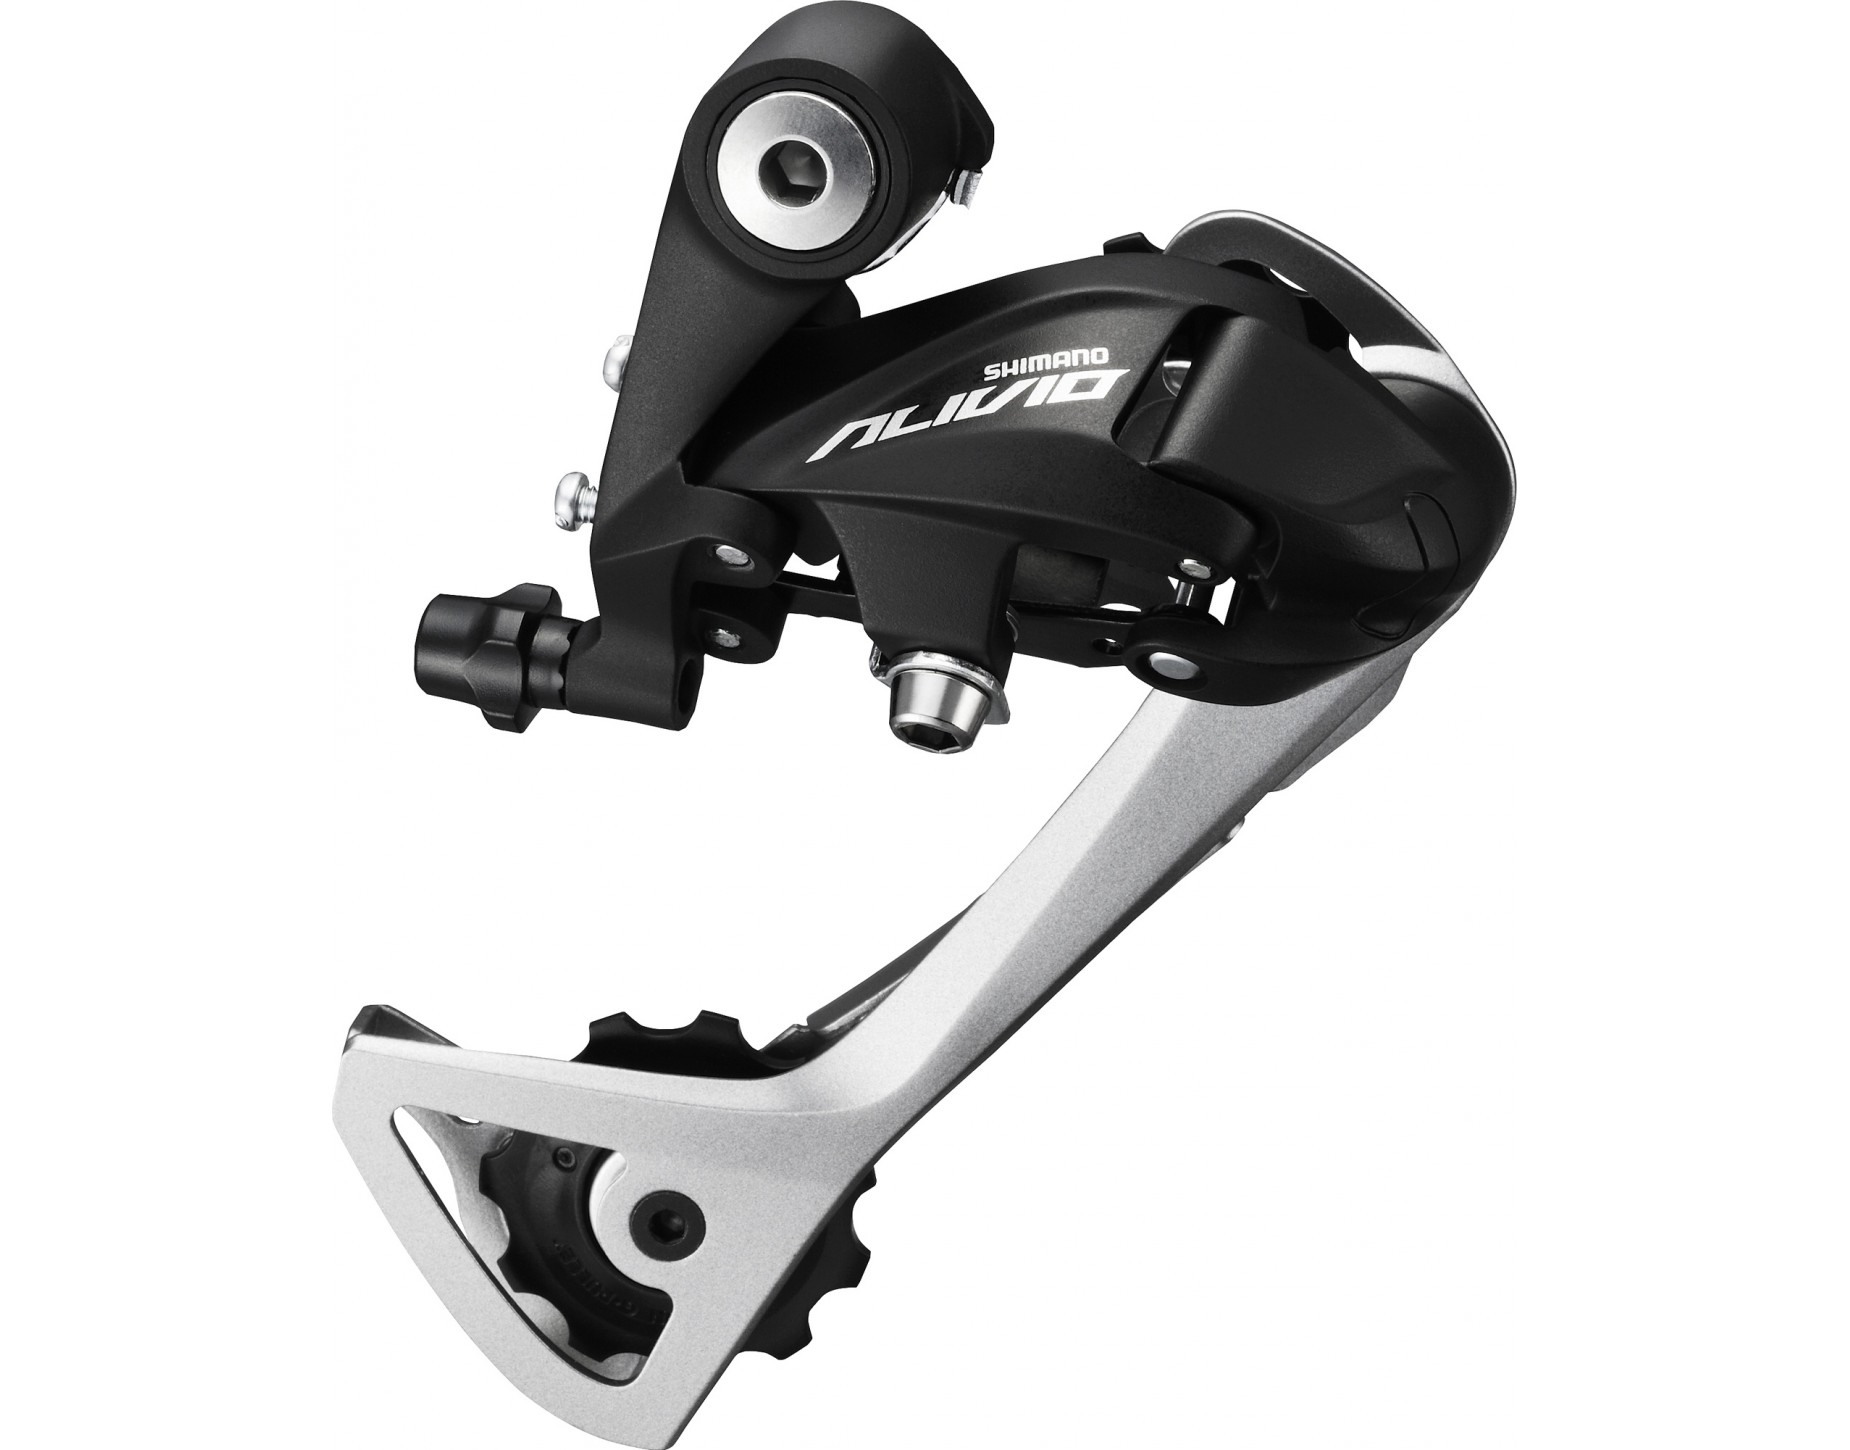 SHIMANO Alivio RD-T4000 rear derailleur – everything you need! | ROSE Bikes